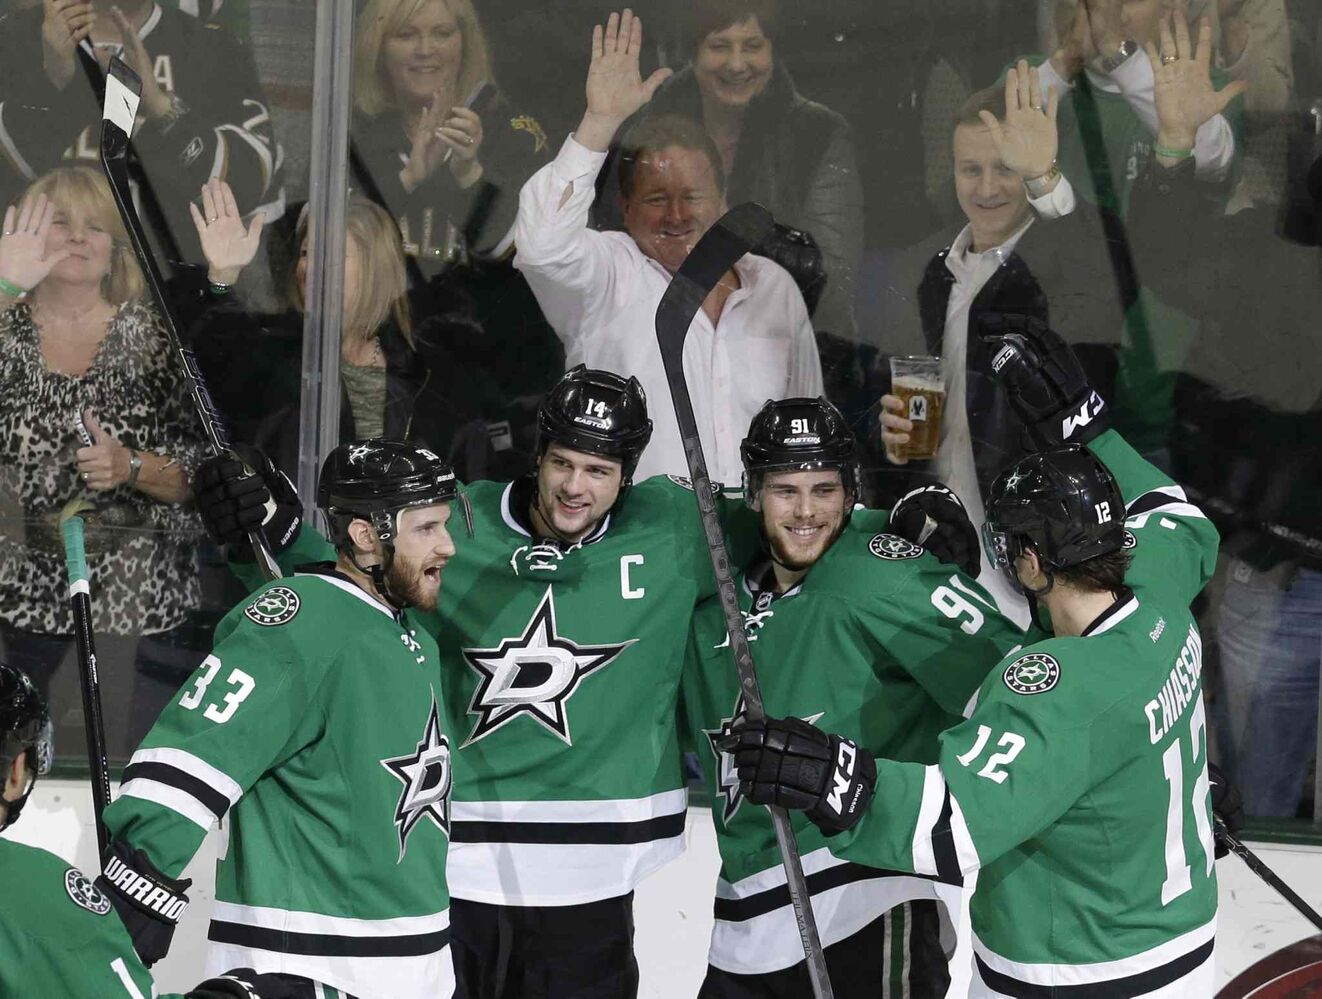 Dallas Stars centre Tyler Seguin (91) celebrates scoring a goal with teammates Alex Goligoski (left), captain Jamie Benn and Alex Chiasson (right) in the second period. (L.M. OTERO / THE ASSOCIATED PRESS)